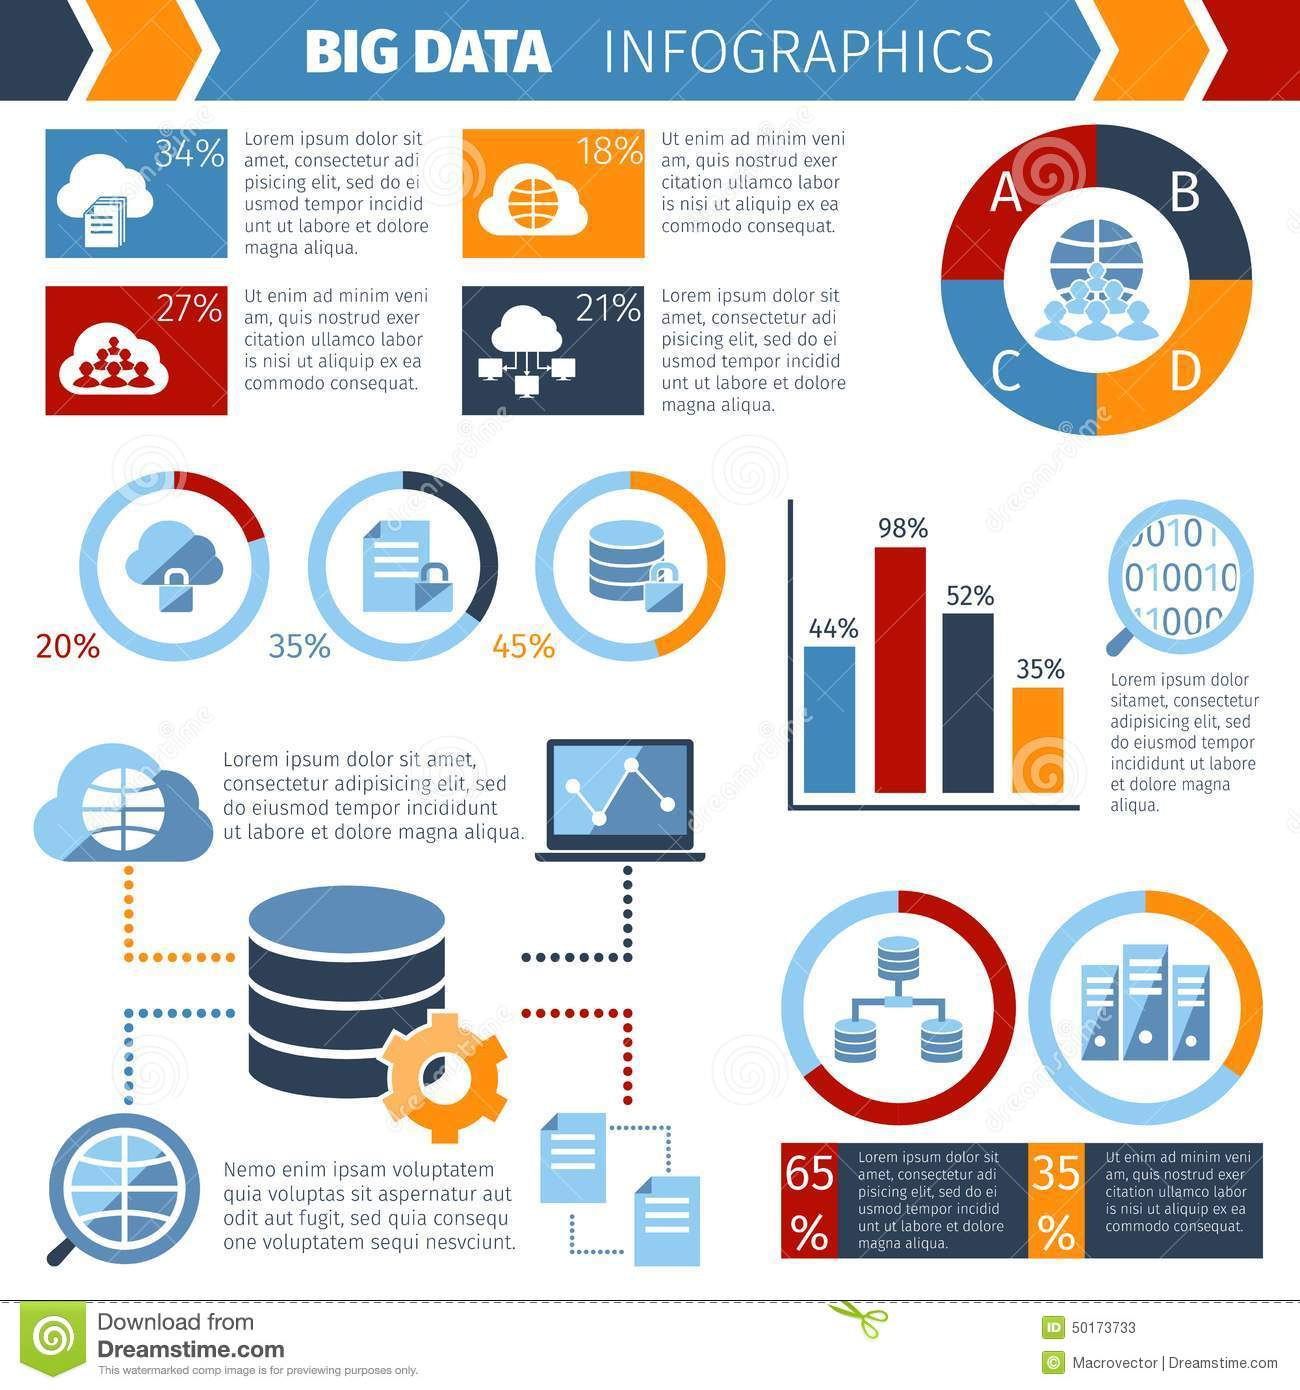 HttpThumbsDreamstimeComZBigDataProcessingInfographics